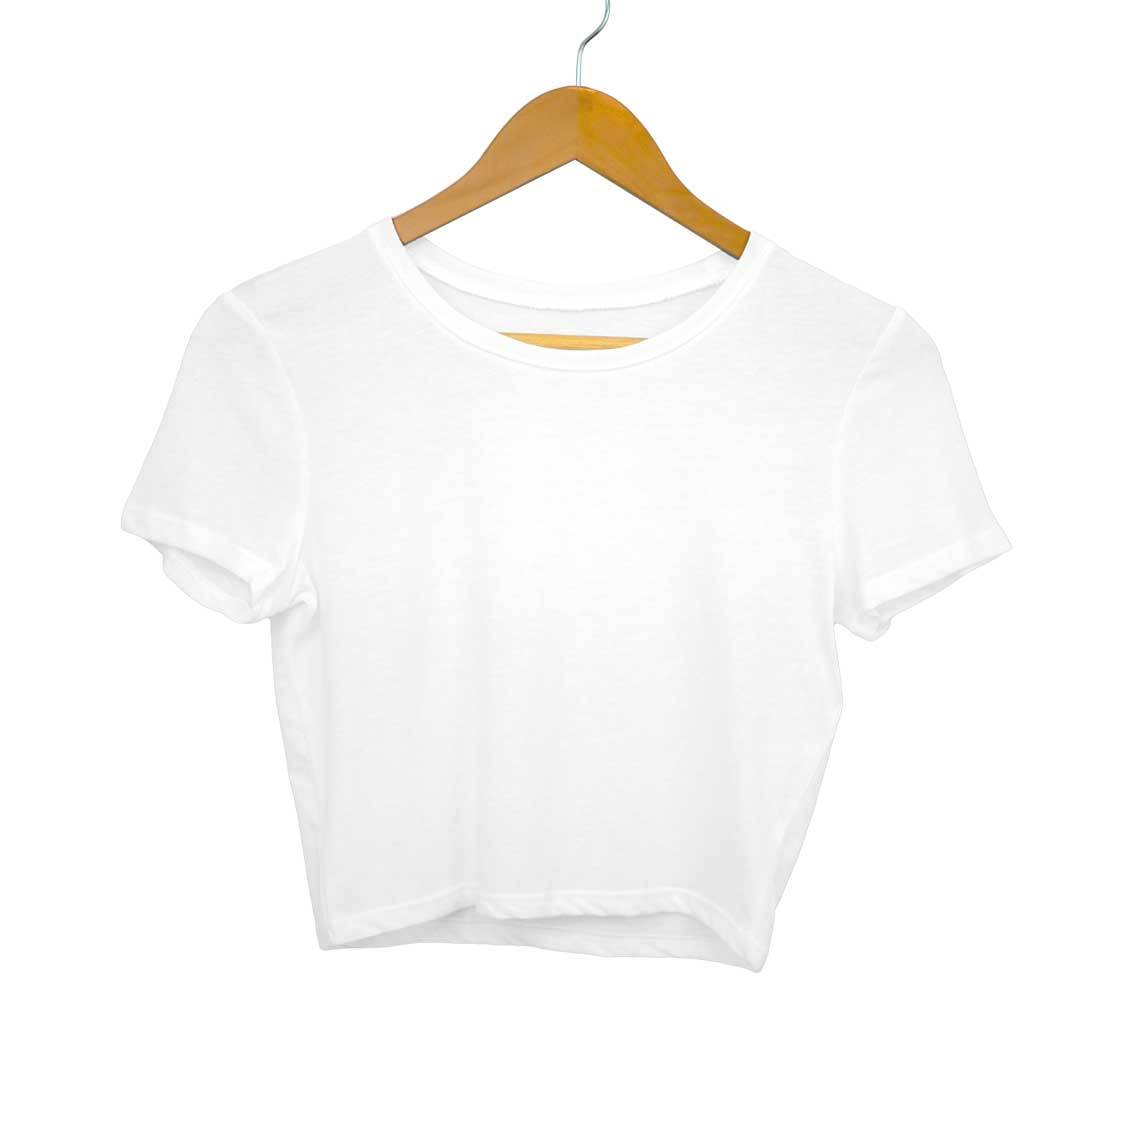 New Simple Plain Crop-Tops for Women